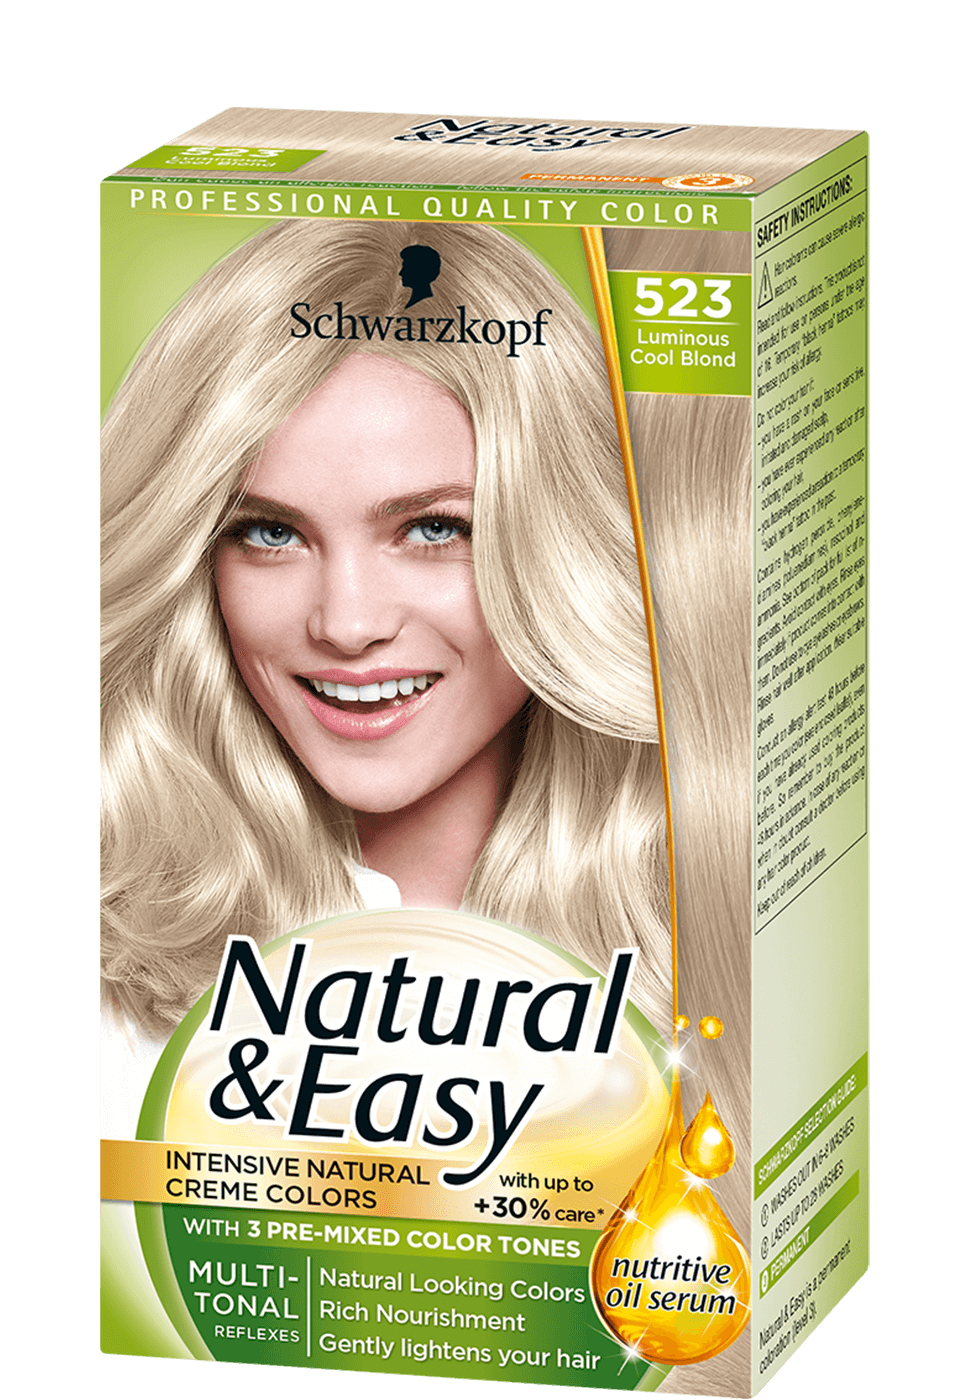 natural_easy_com_blonde_hair_523_luminous_cool_blond_970x1400